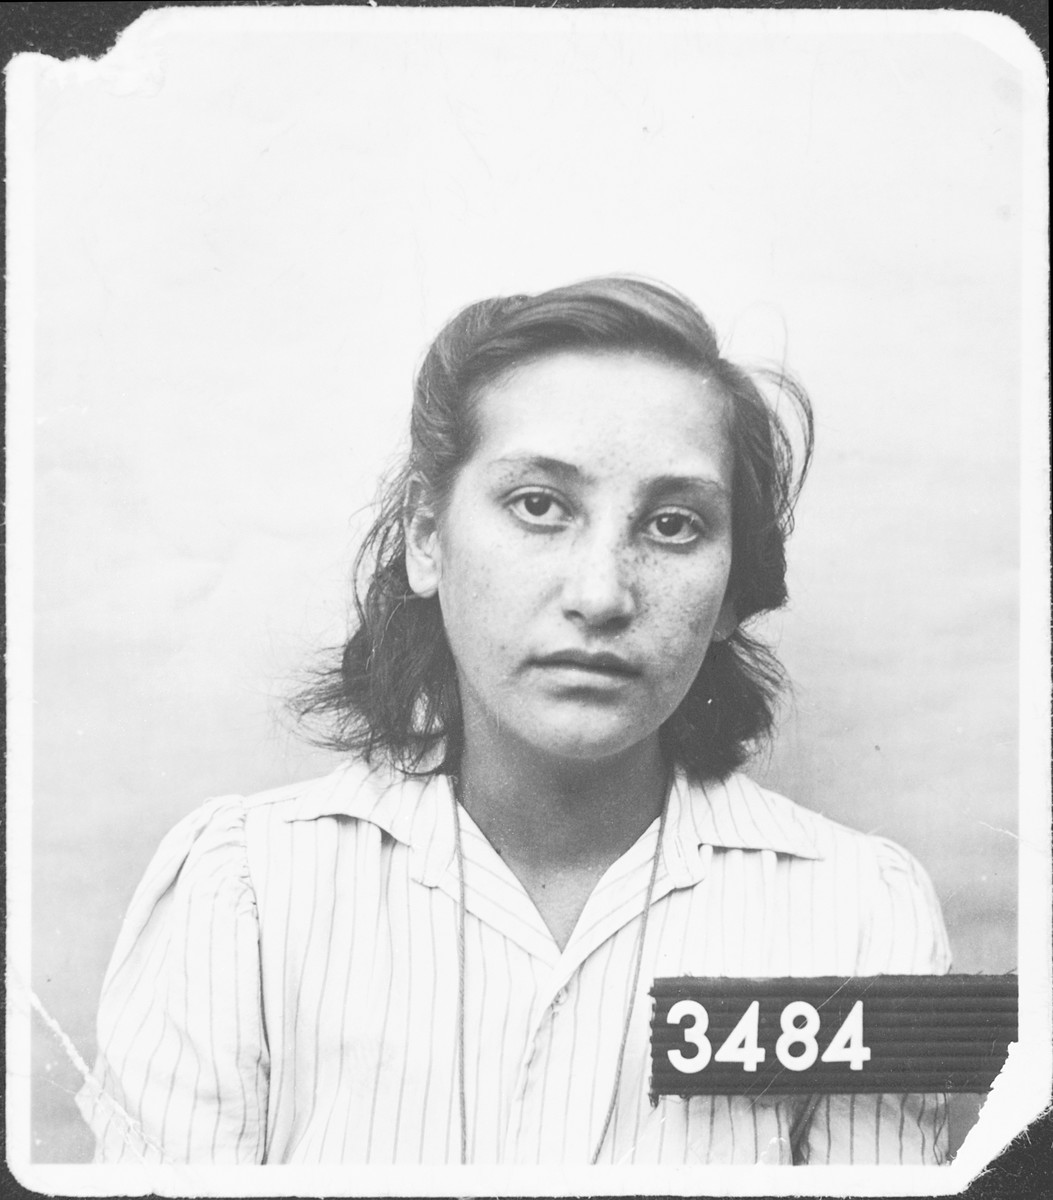 Olga Jakubovits poses for her entry photo as Jewish refugee in Malmo, Sweden.